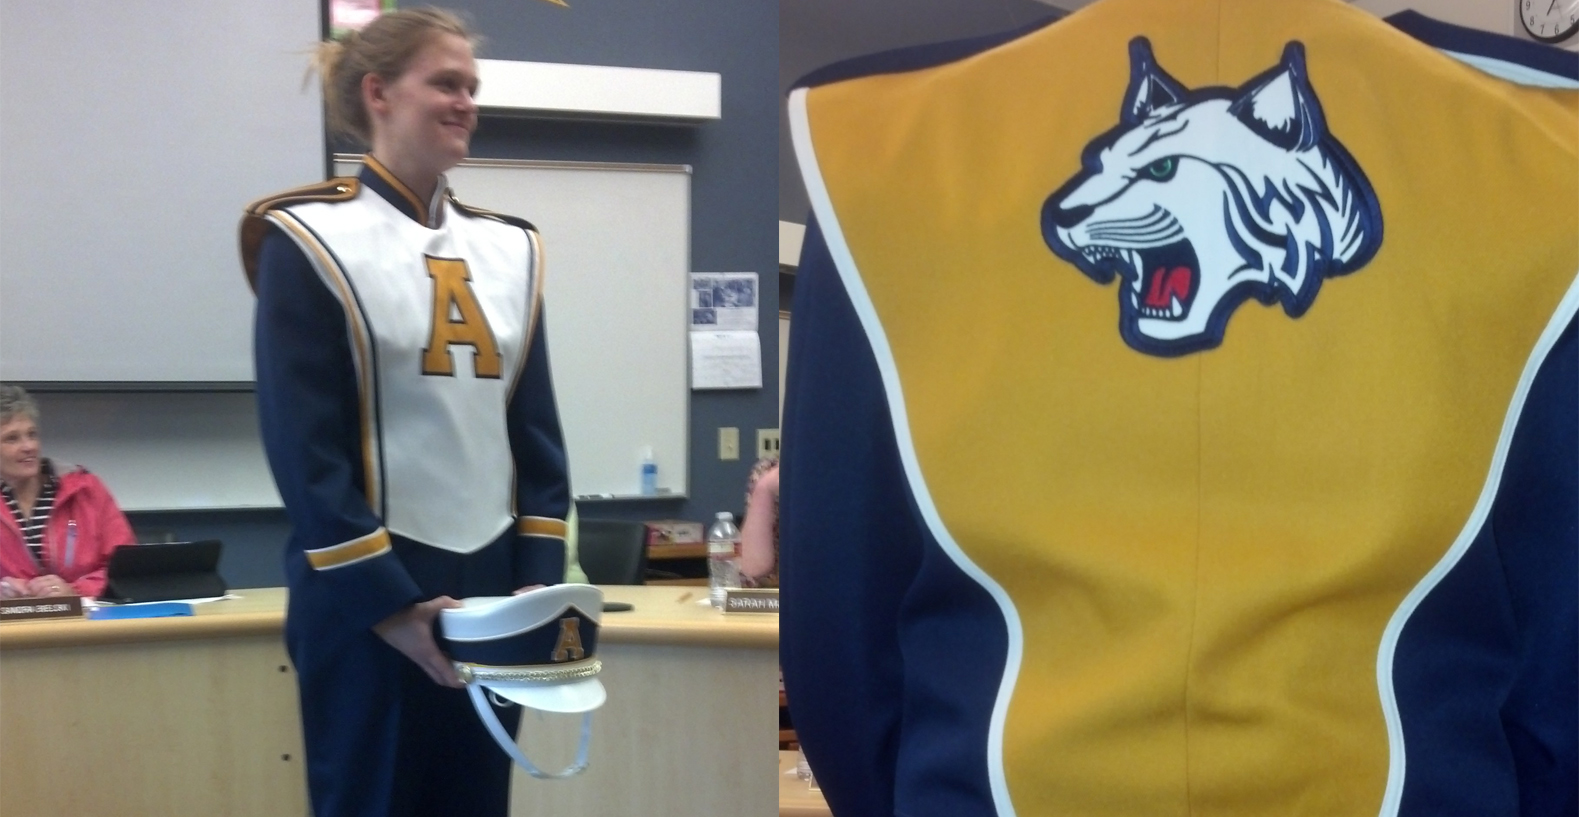 New uniforms unveiled for Aberdeen Marching Band | KXRO News Radio